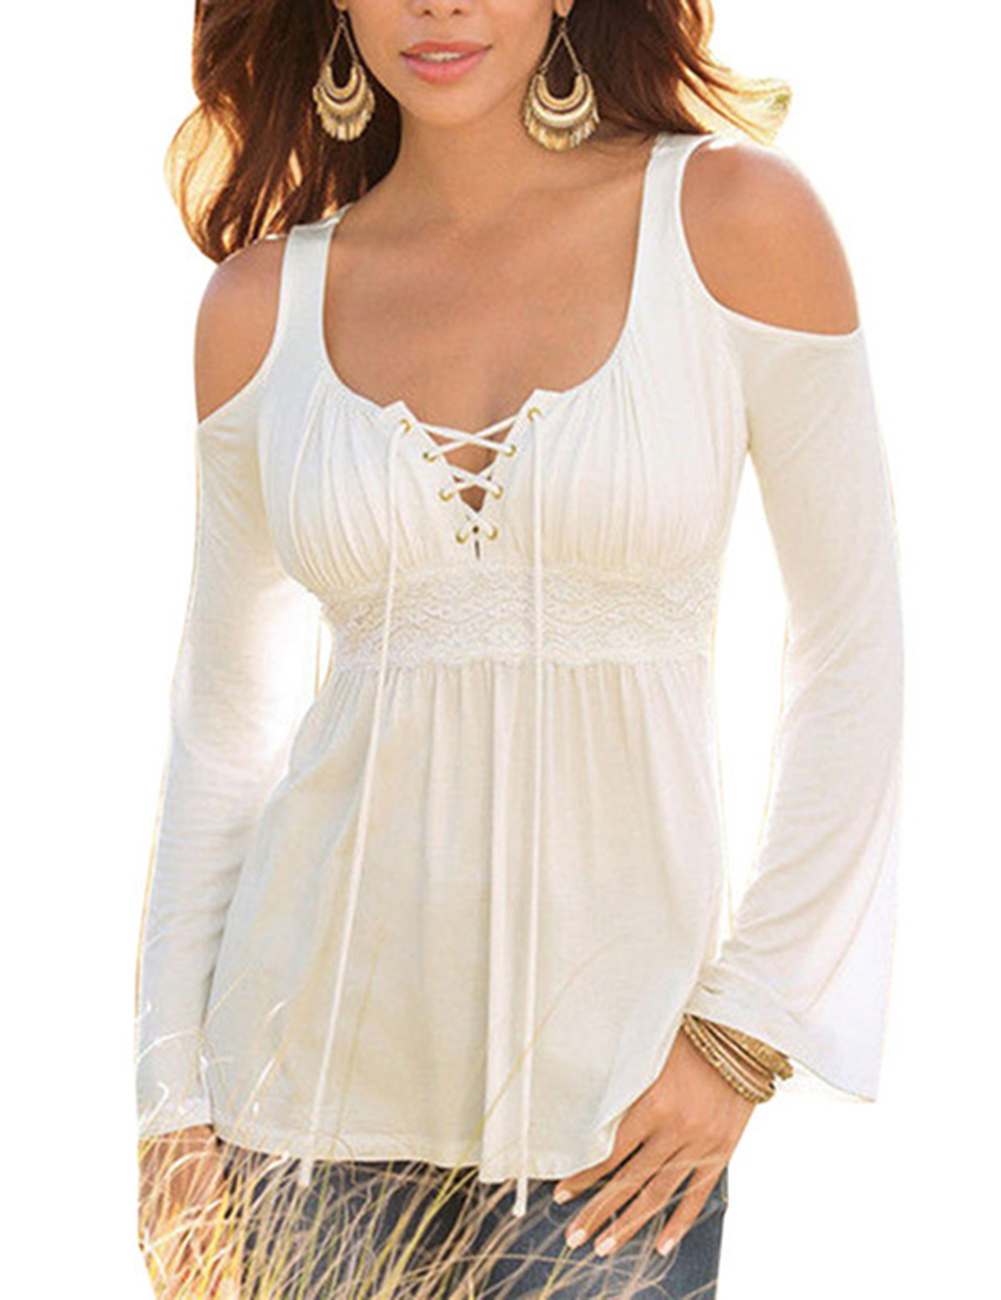 Women Fashion Sexy Off-shoulder Lace Long Sleeve Shirt Soft Cotton Casual Tops Clothes